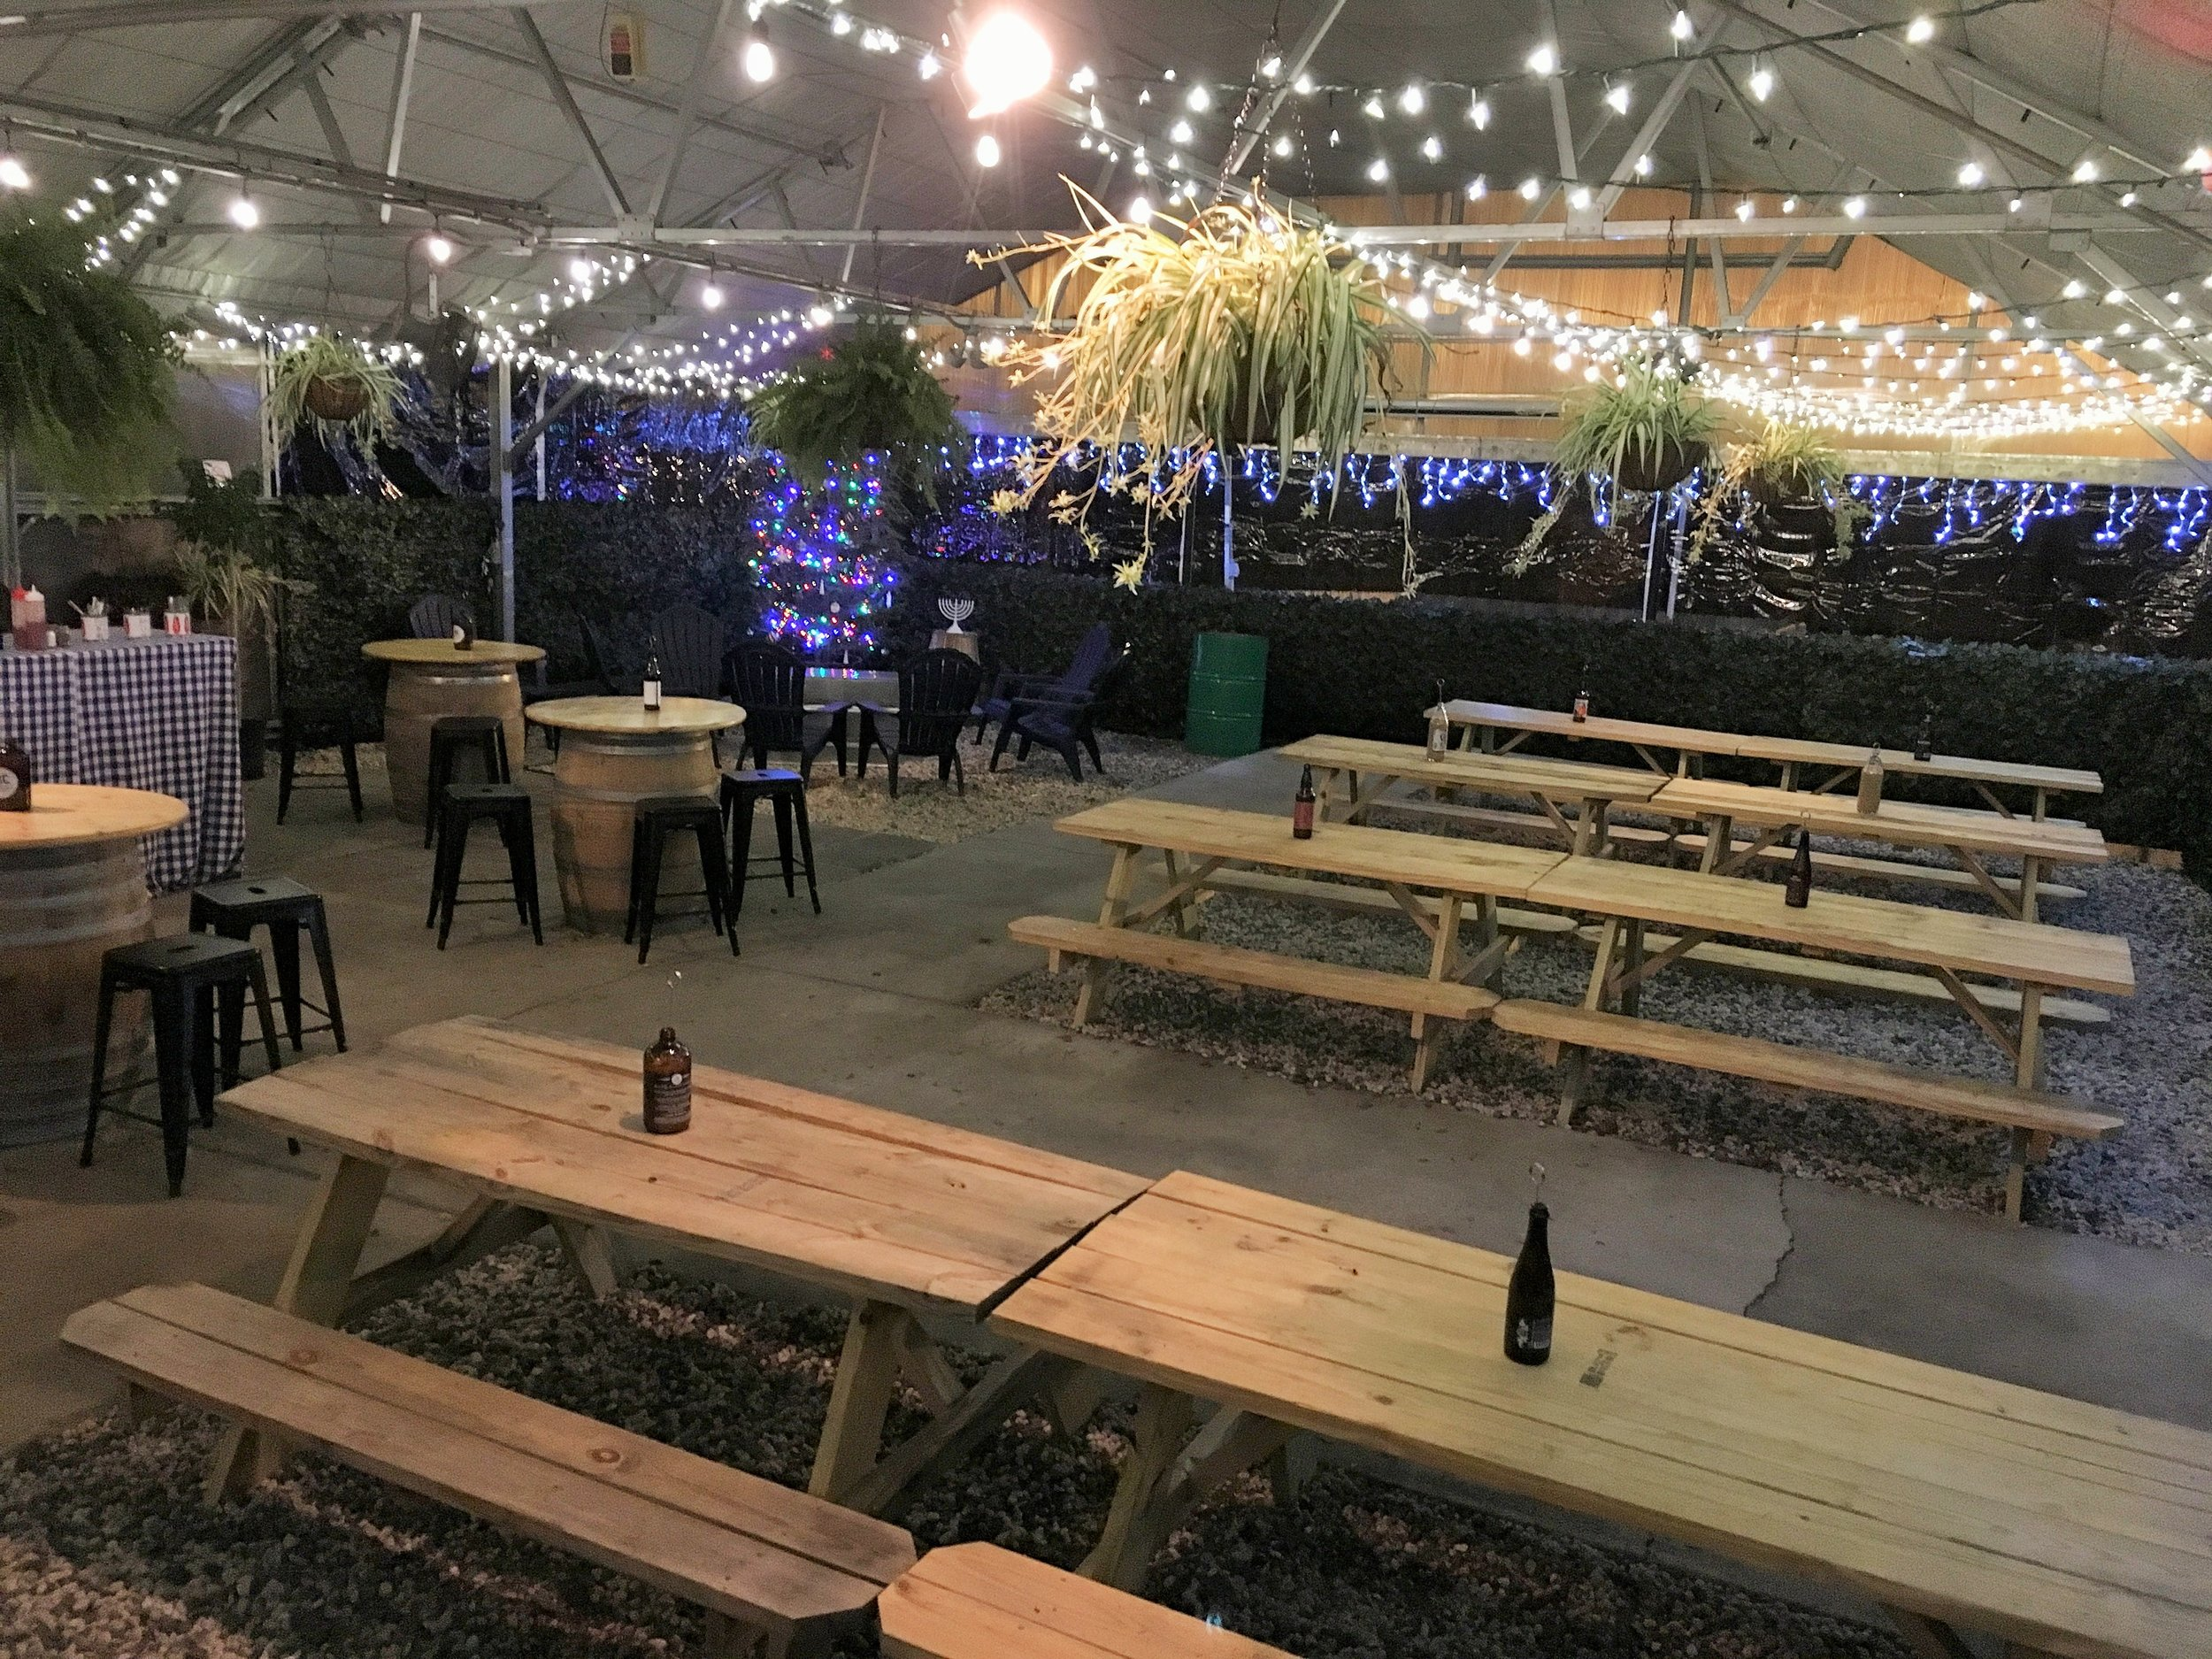 TRIVIA NIGHT - 3rd Tues of Month | 7pm-8:30pmJoin us for Trivia Night in the Garden. Free to play! Teams of up to six players – need to be ready by 7pm. Random prizes throughout the game – gift certificates for winning team.